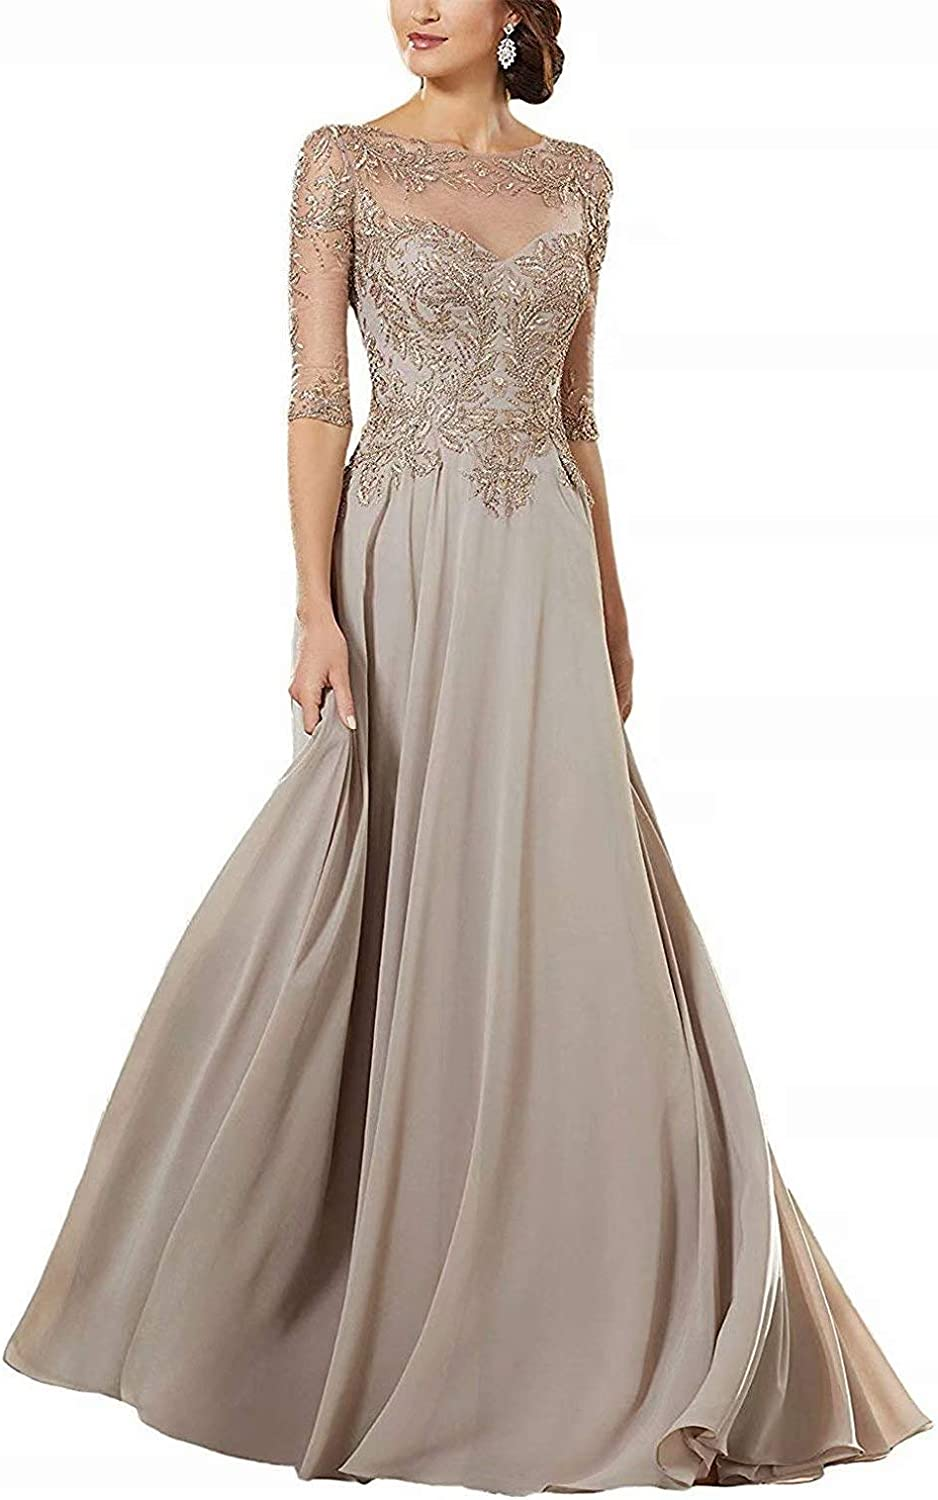 Women's Lace Applique Beaded Mother of The Bride Groom Dress Long Sleeves Chiffon Formal Evening Gowns